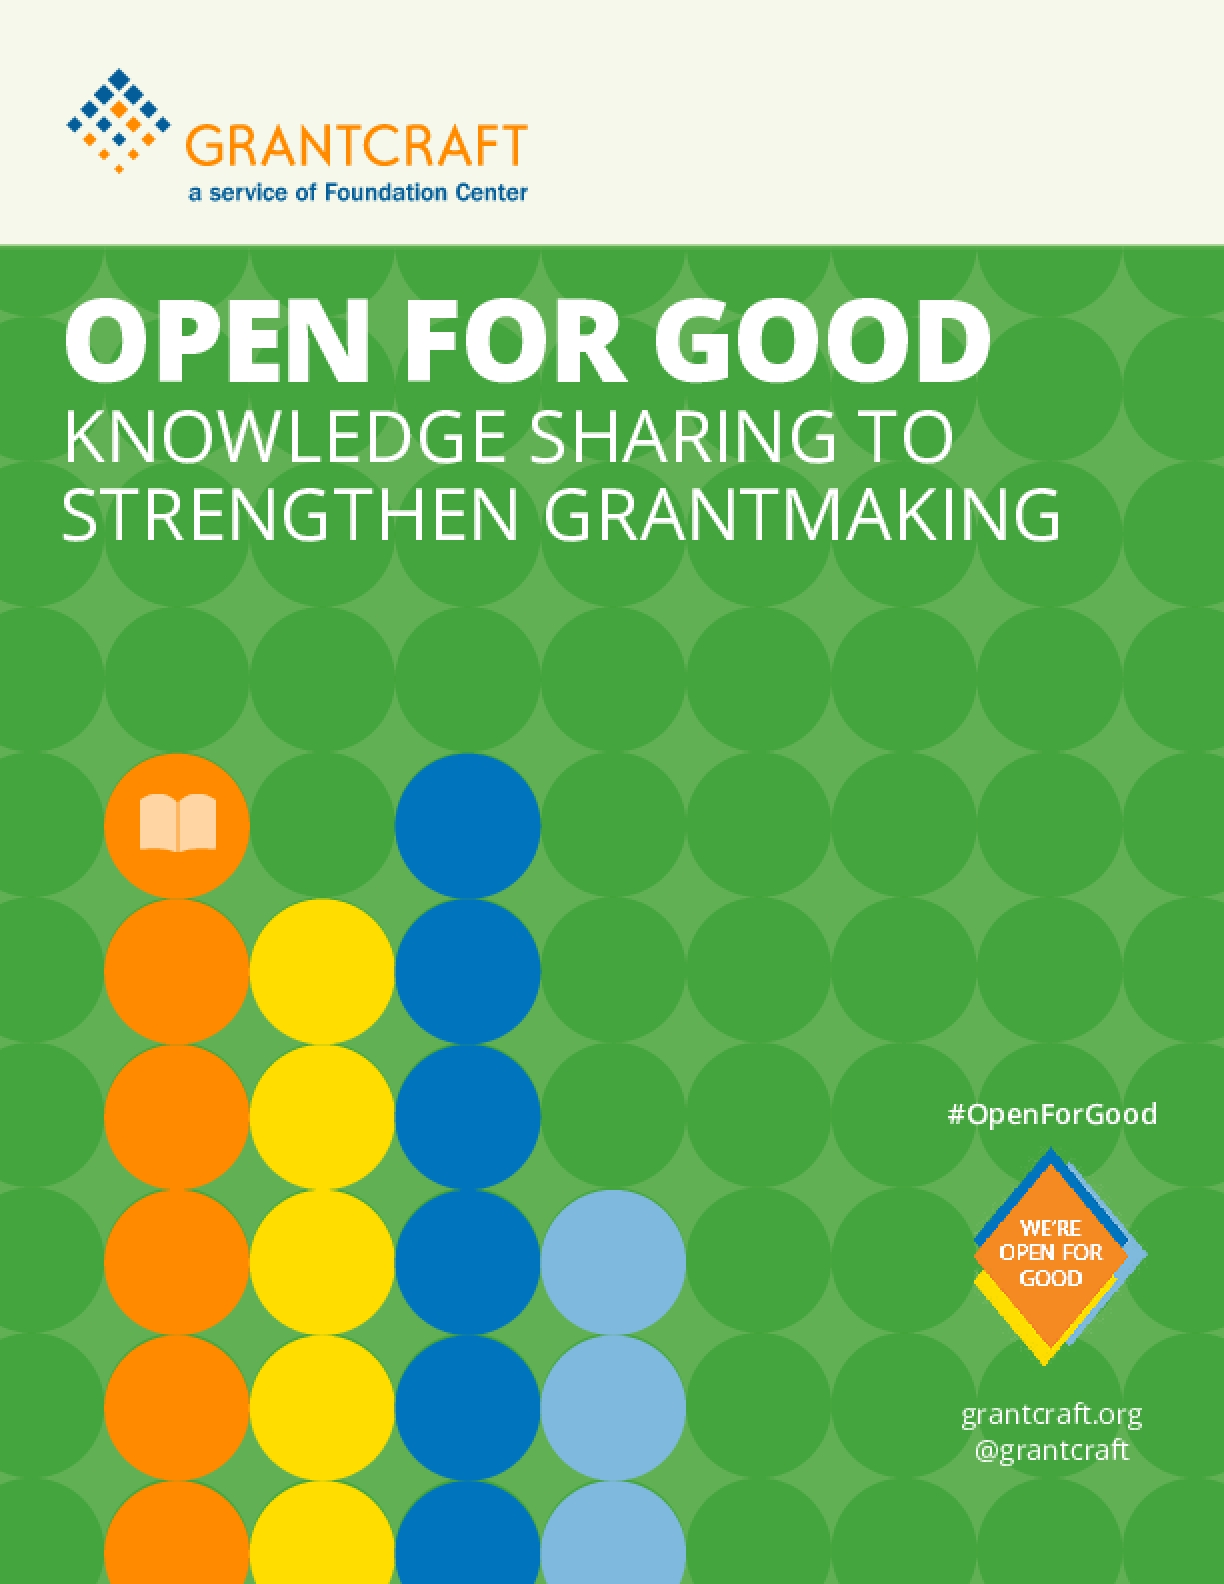 Open for Good: Knowledge Sharing to Strengthen Grantmaking